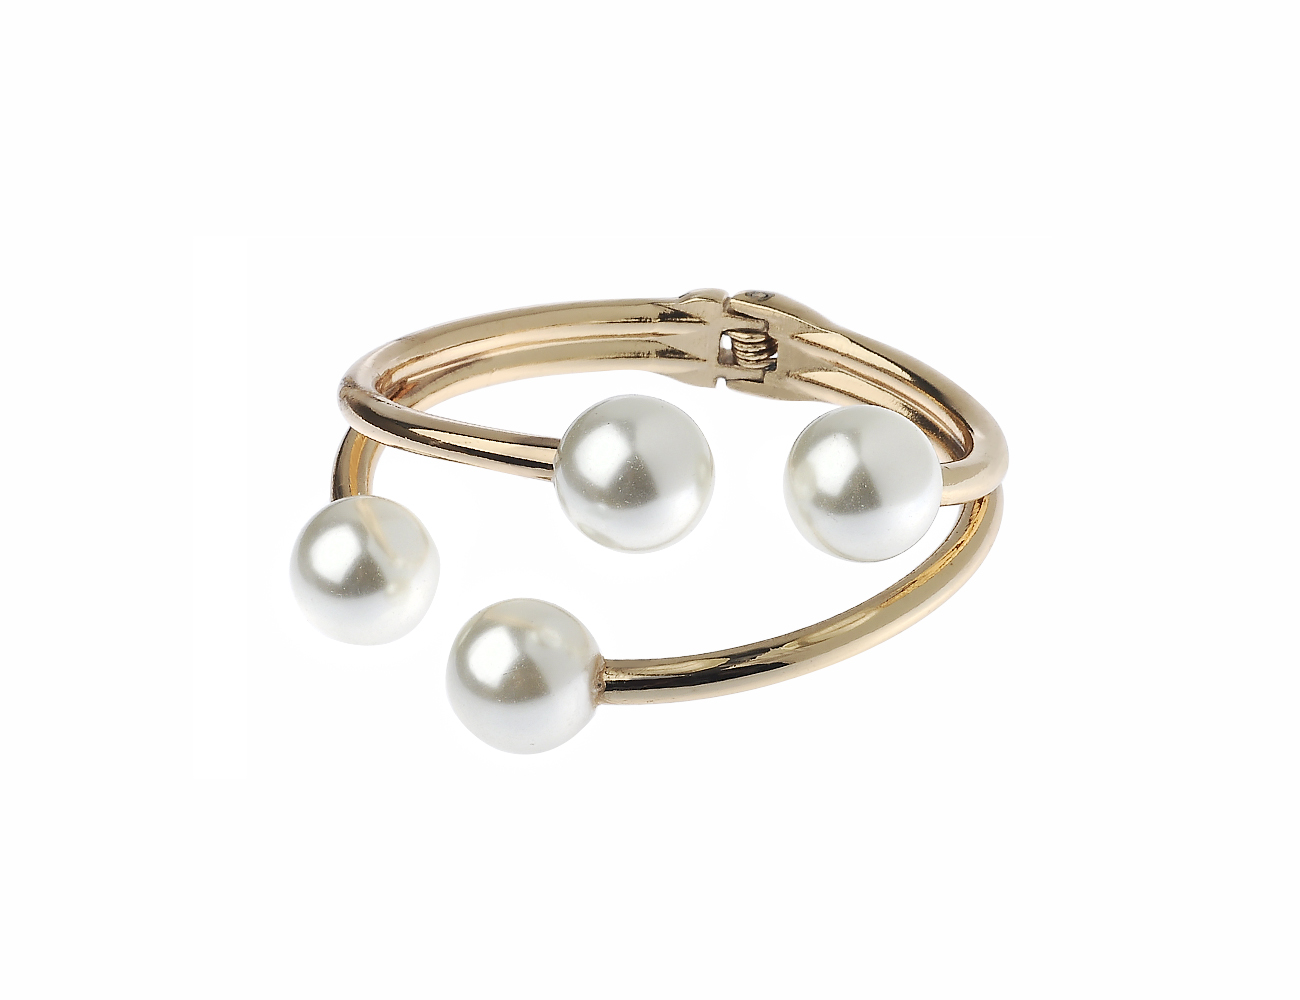 Gold Tone Imitation Pearl Hinged Cuff Bracelet